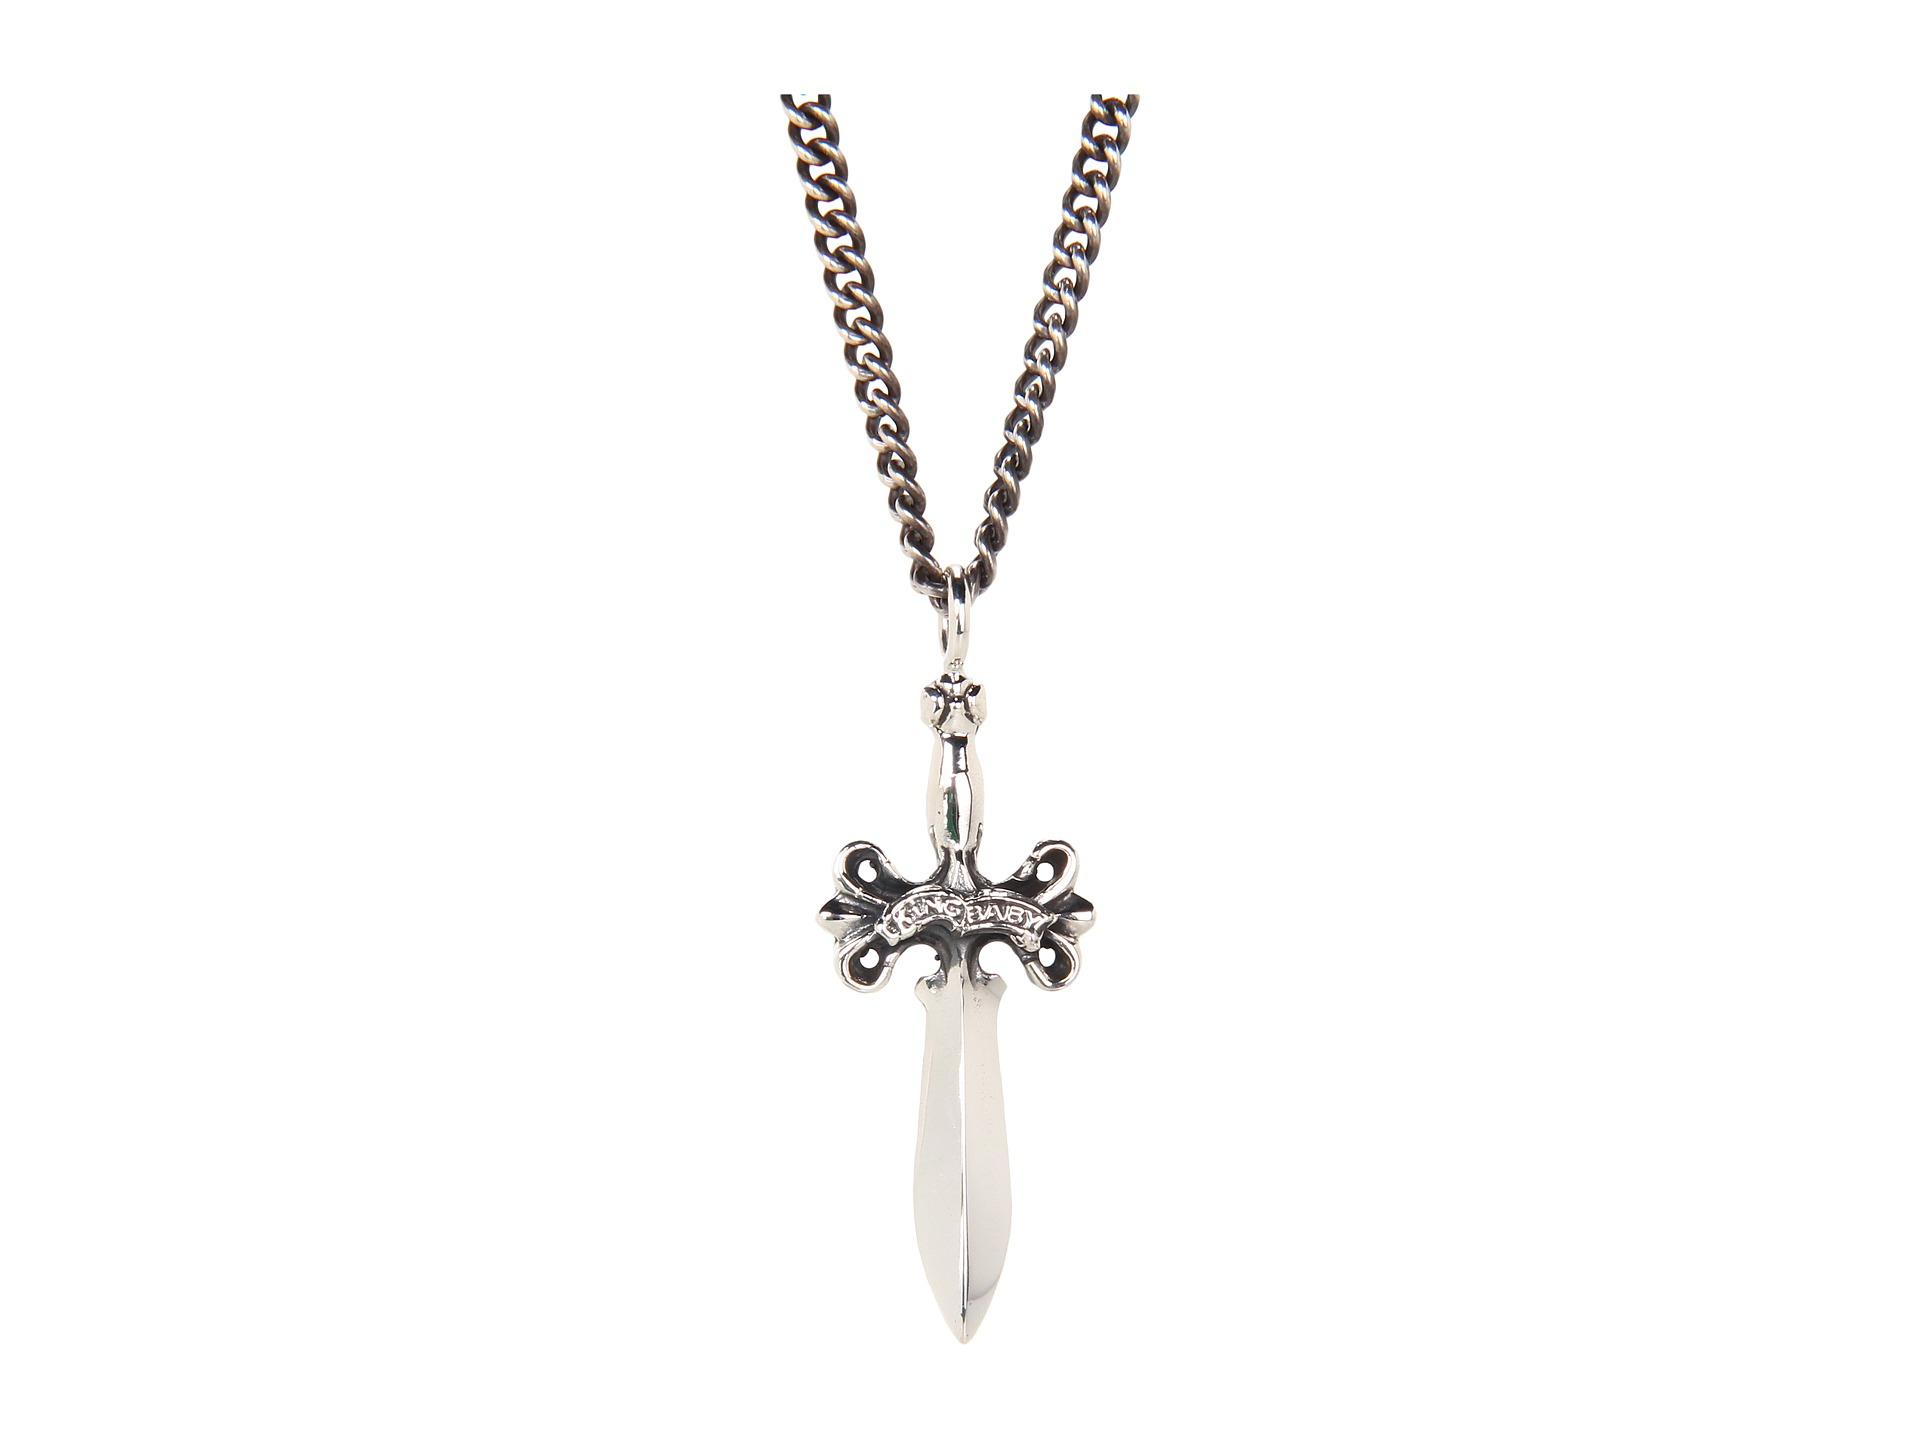 King baby studio small dagger pendant necklace in metallic for Baby jewelry near me